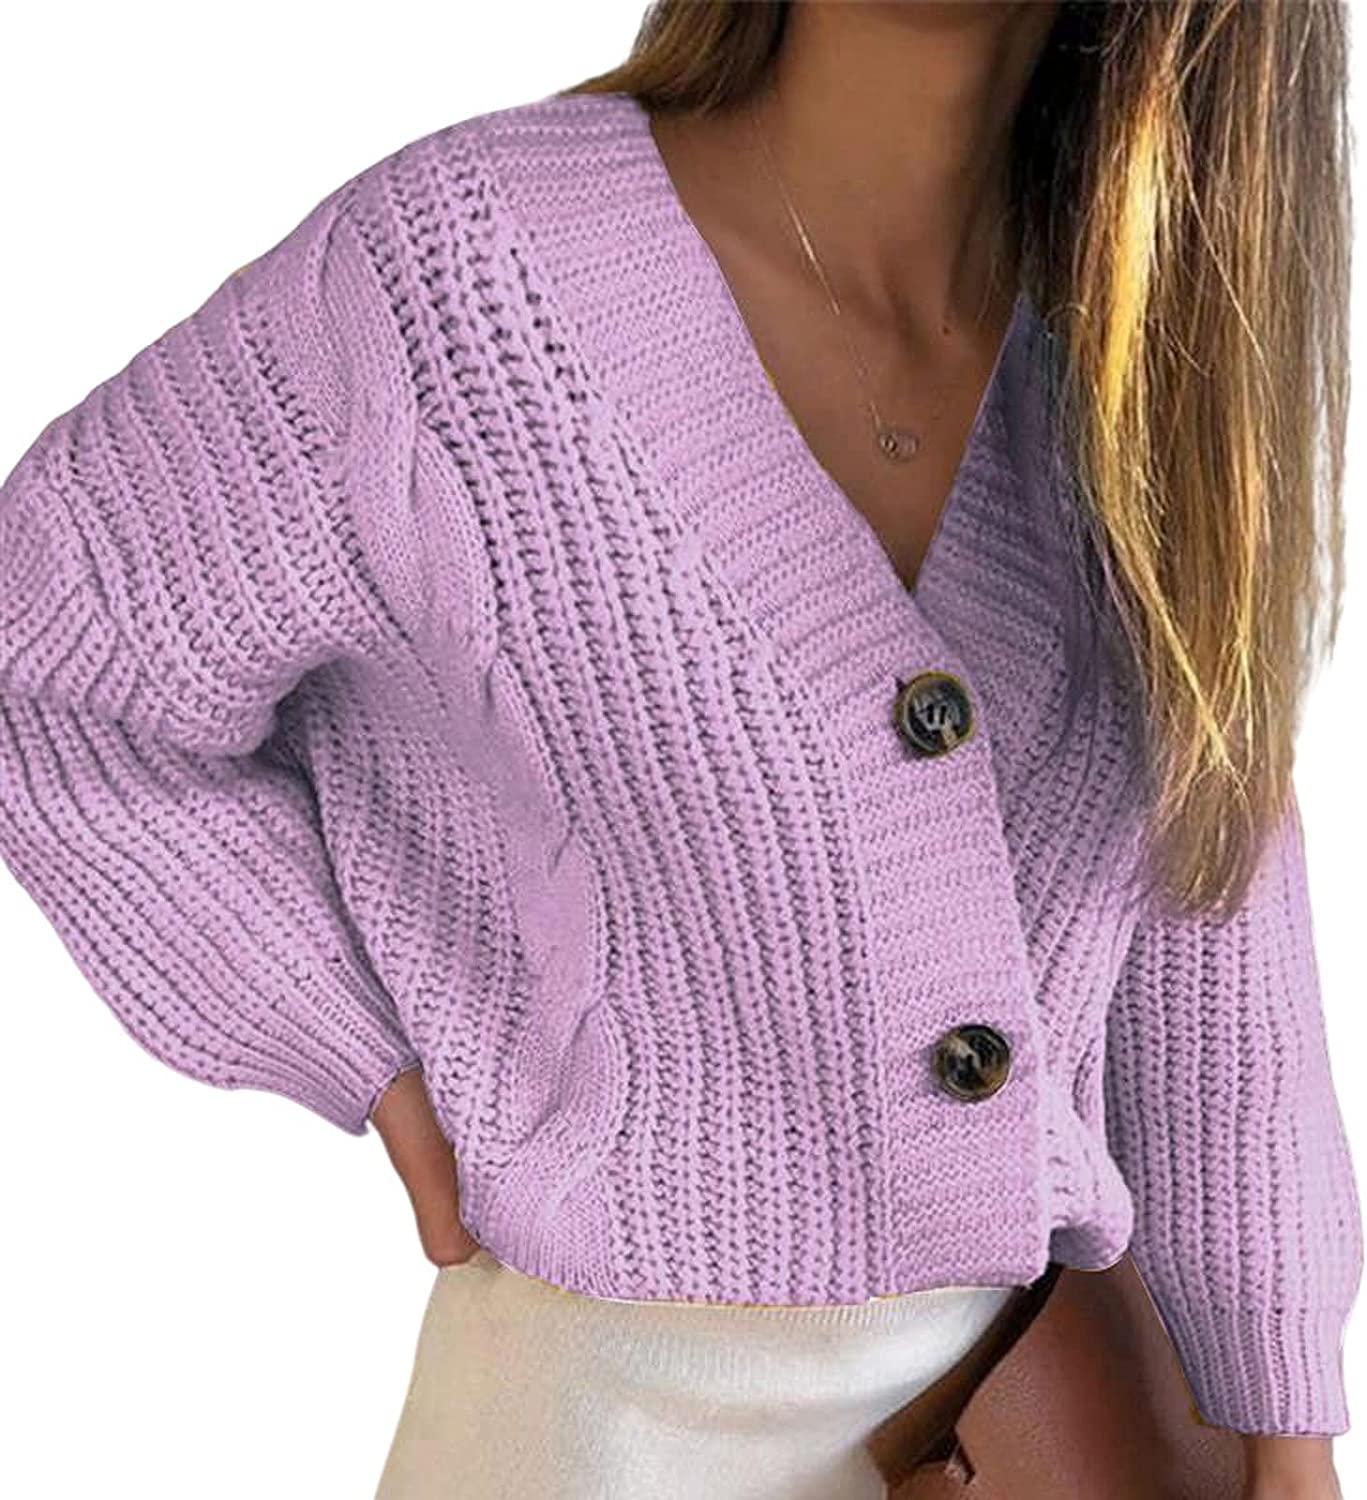 Sweater Cardigan Women V-Neck Buttons Thick Line Cardigans Sweater Blouse